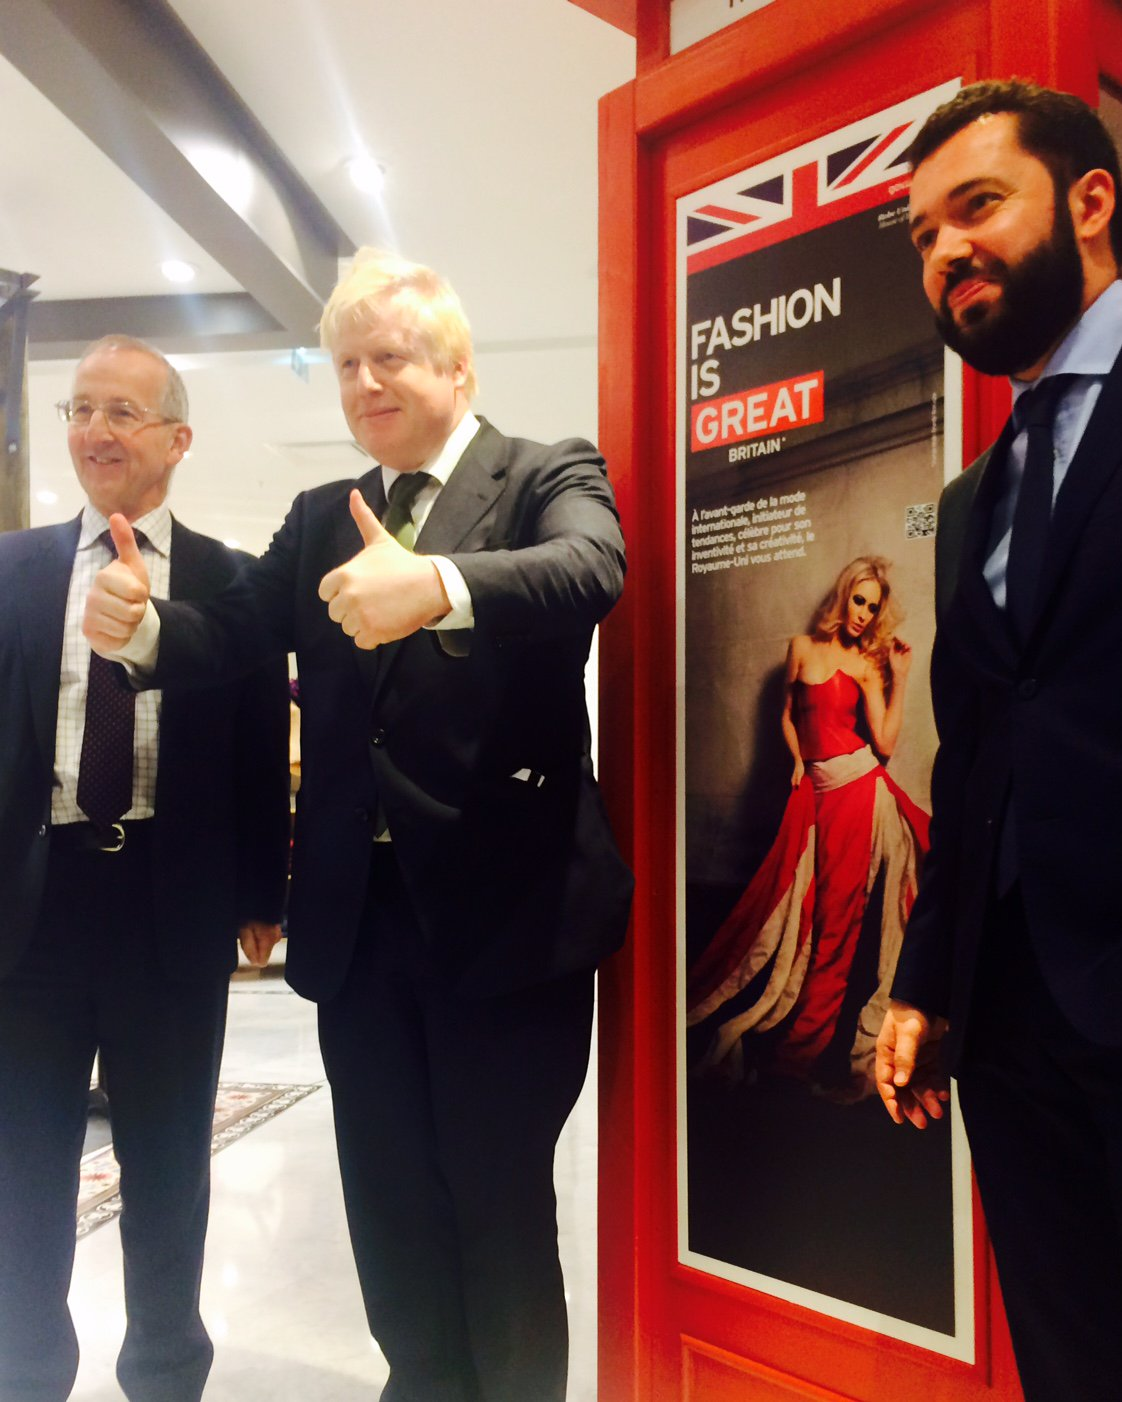 Last night I visited @leBHVmarais store w/ @HMARicketts in Paris to launch @UKTIFrance 's British Christmas campaign https://t.co/piDOsghVKk